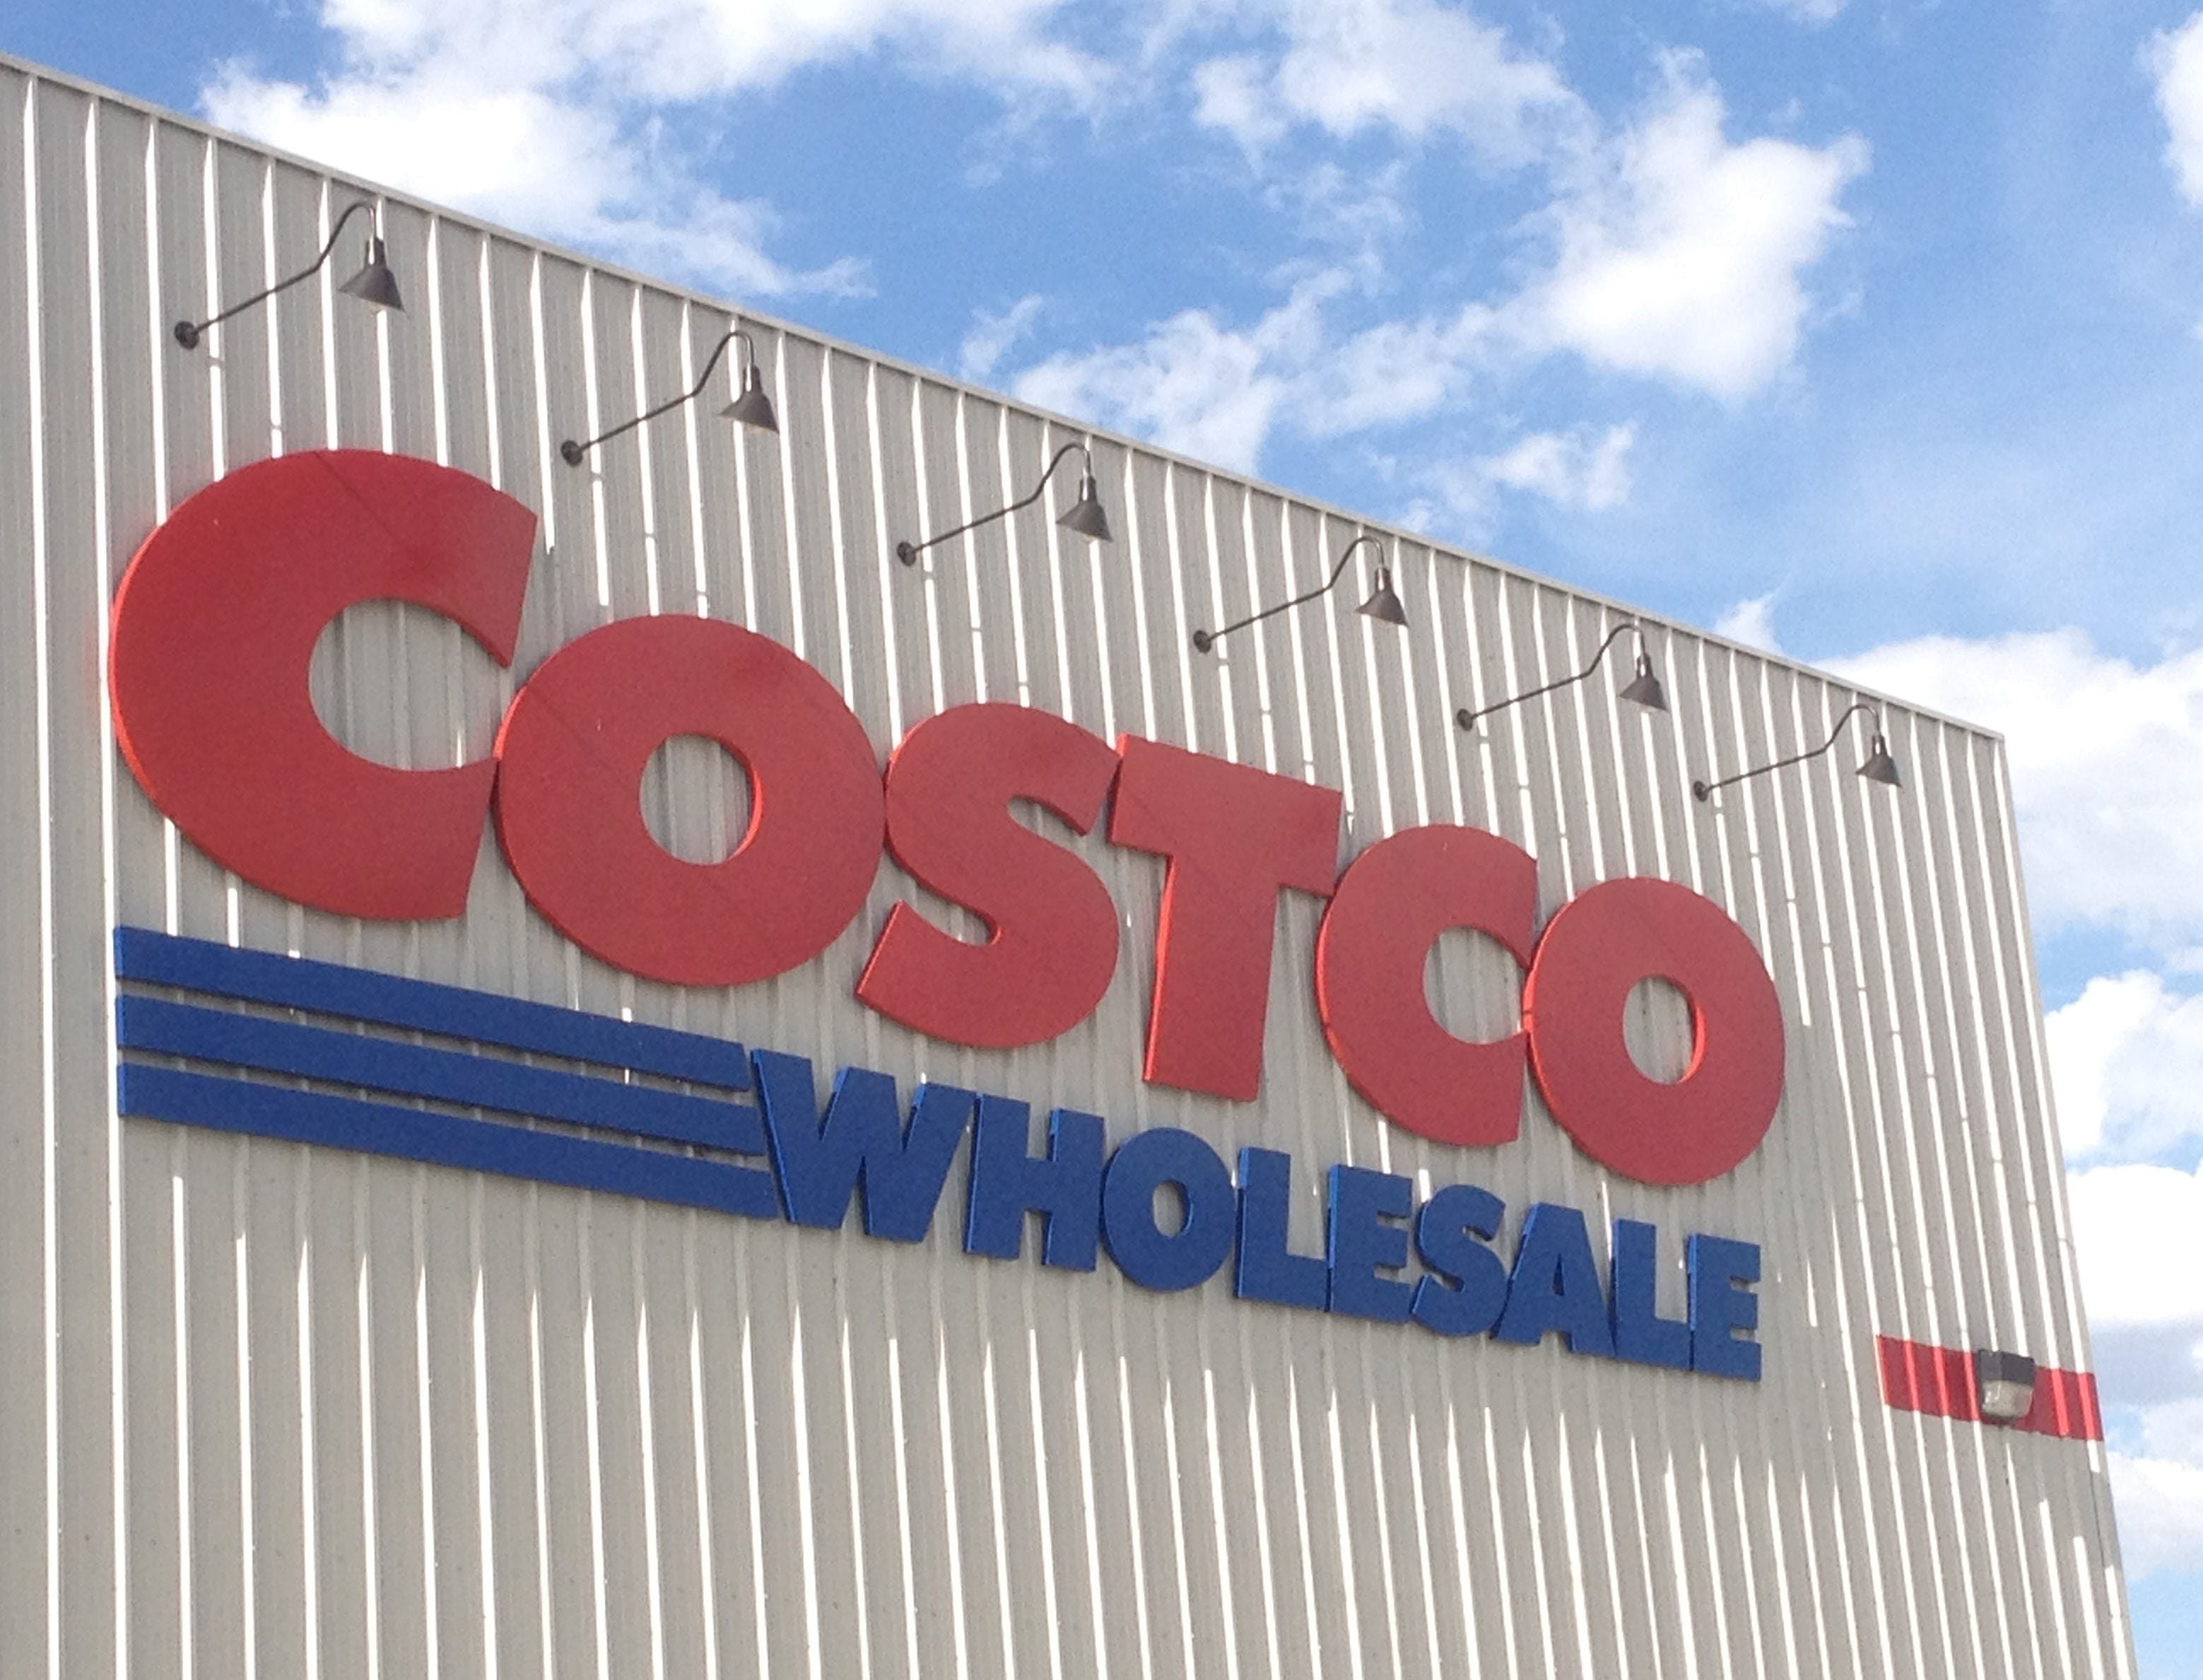 Costco - Accommodation in Bendigo